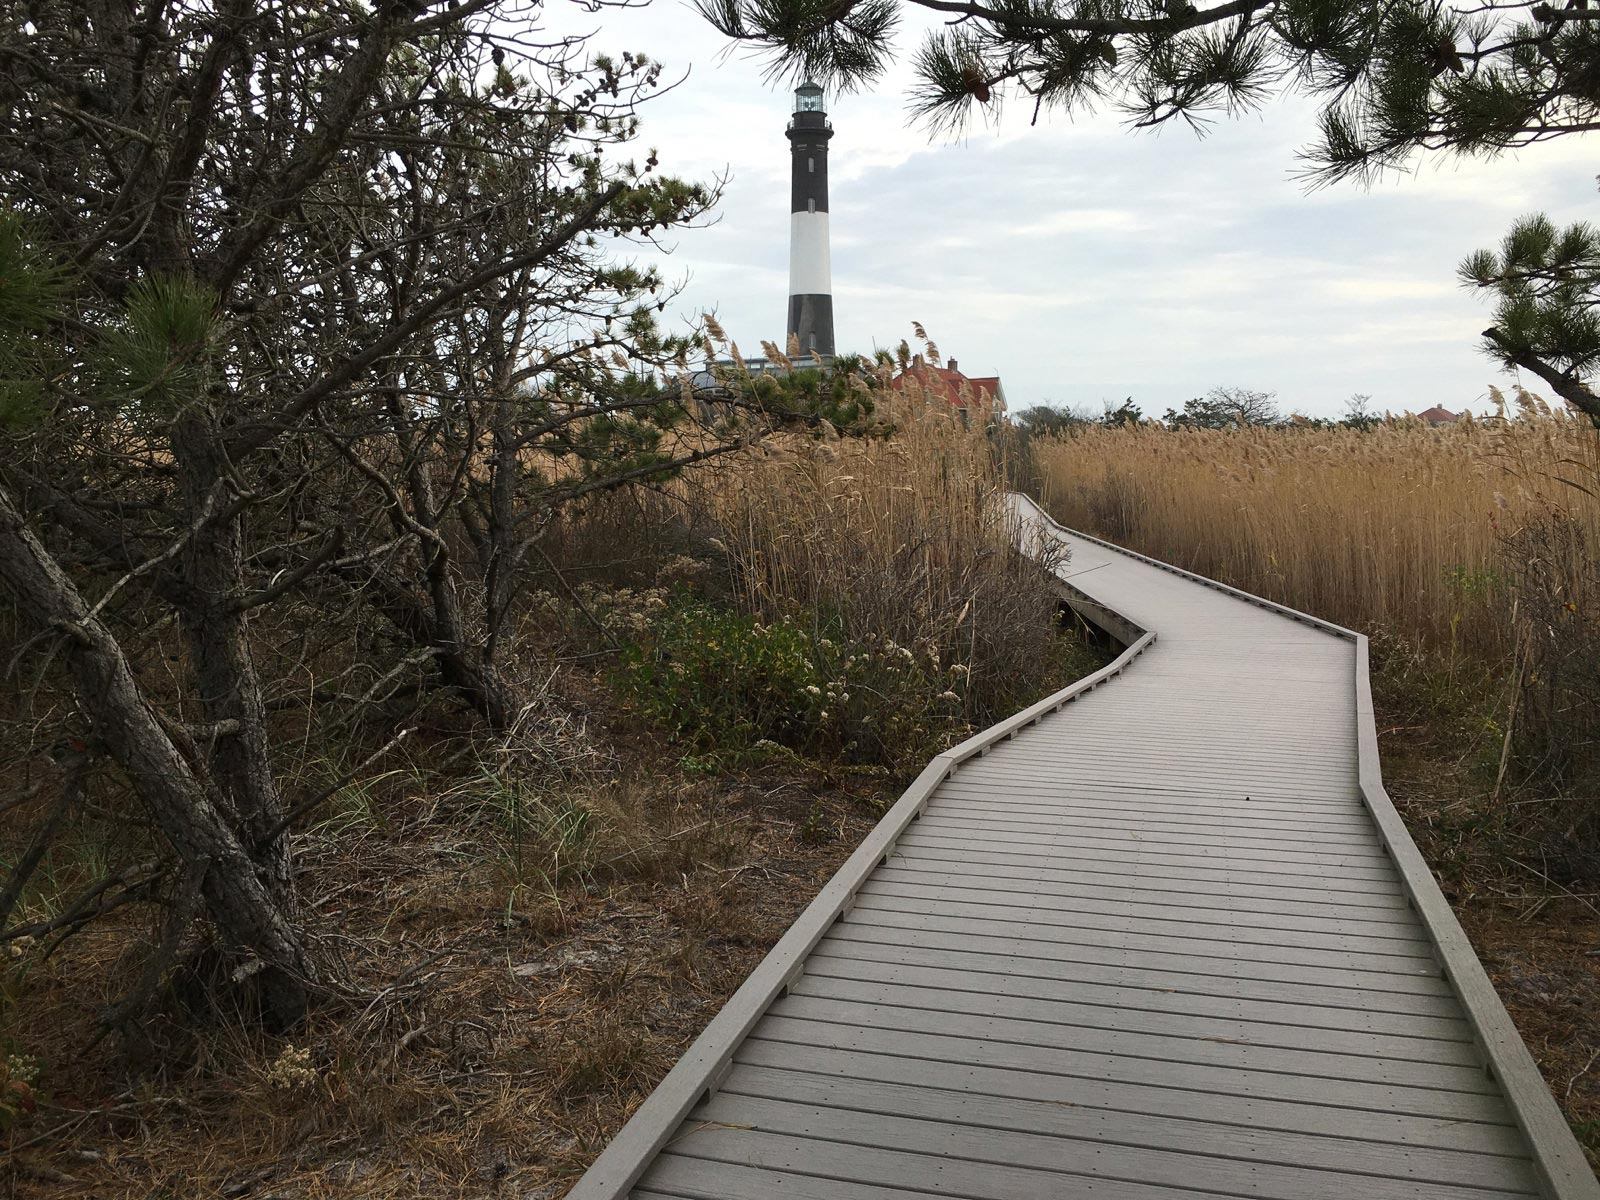 Boardwalk leading to lighthouse